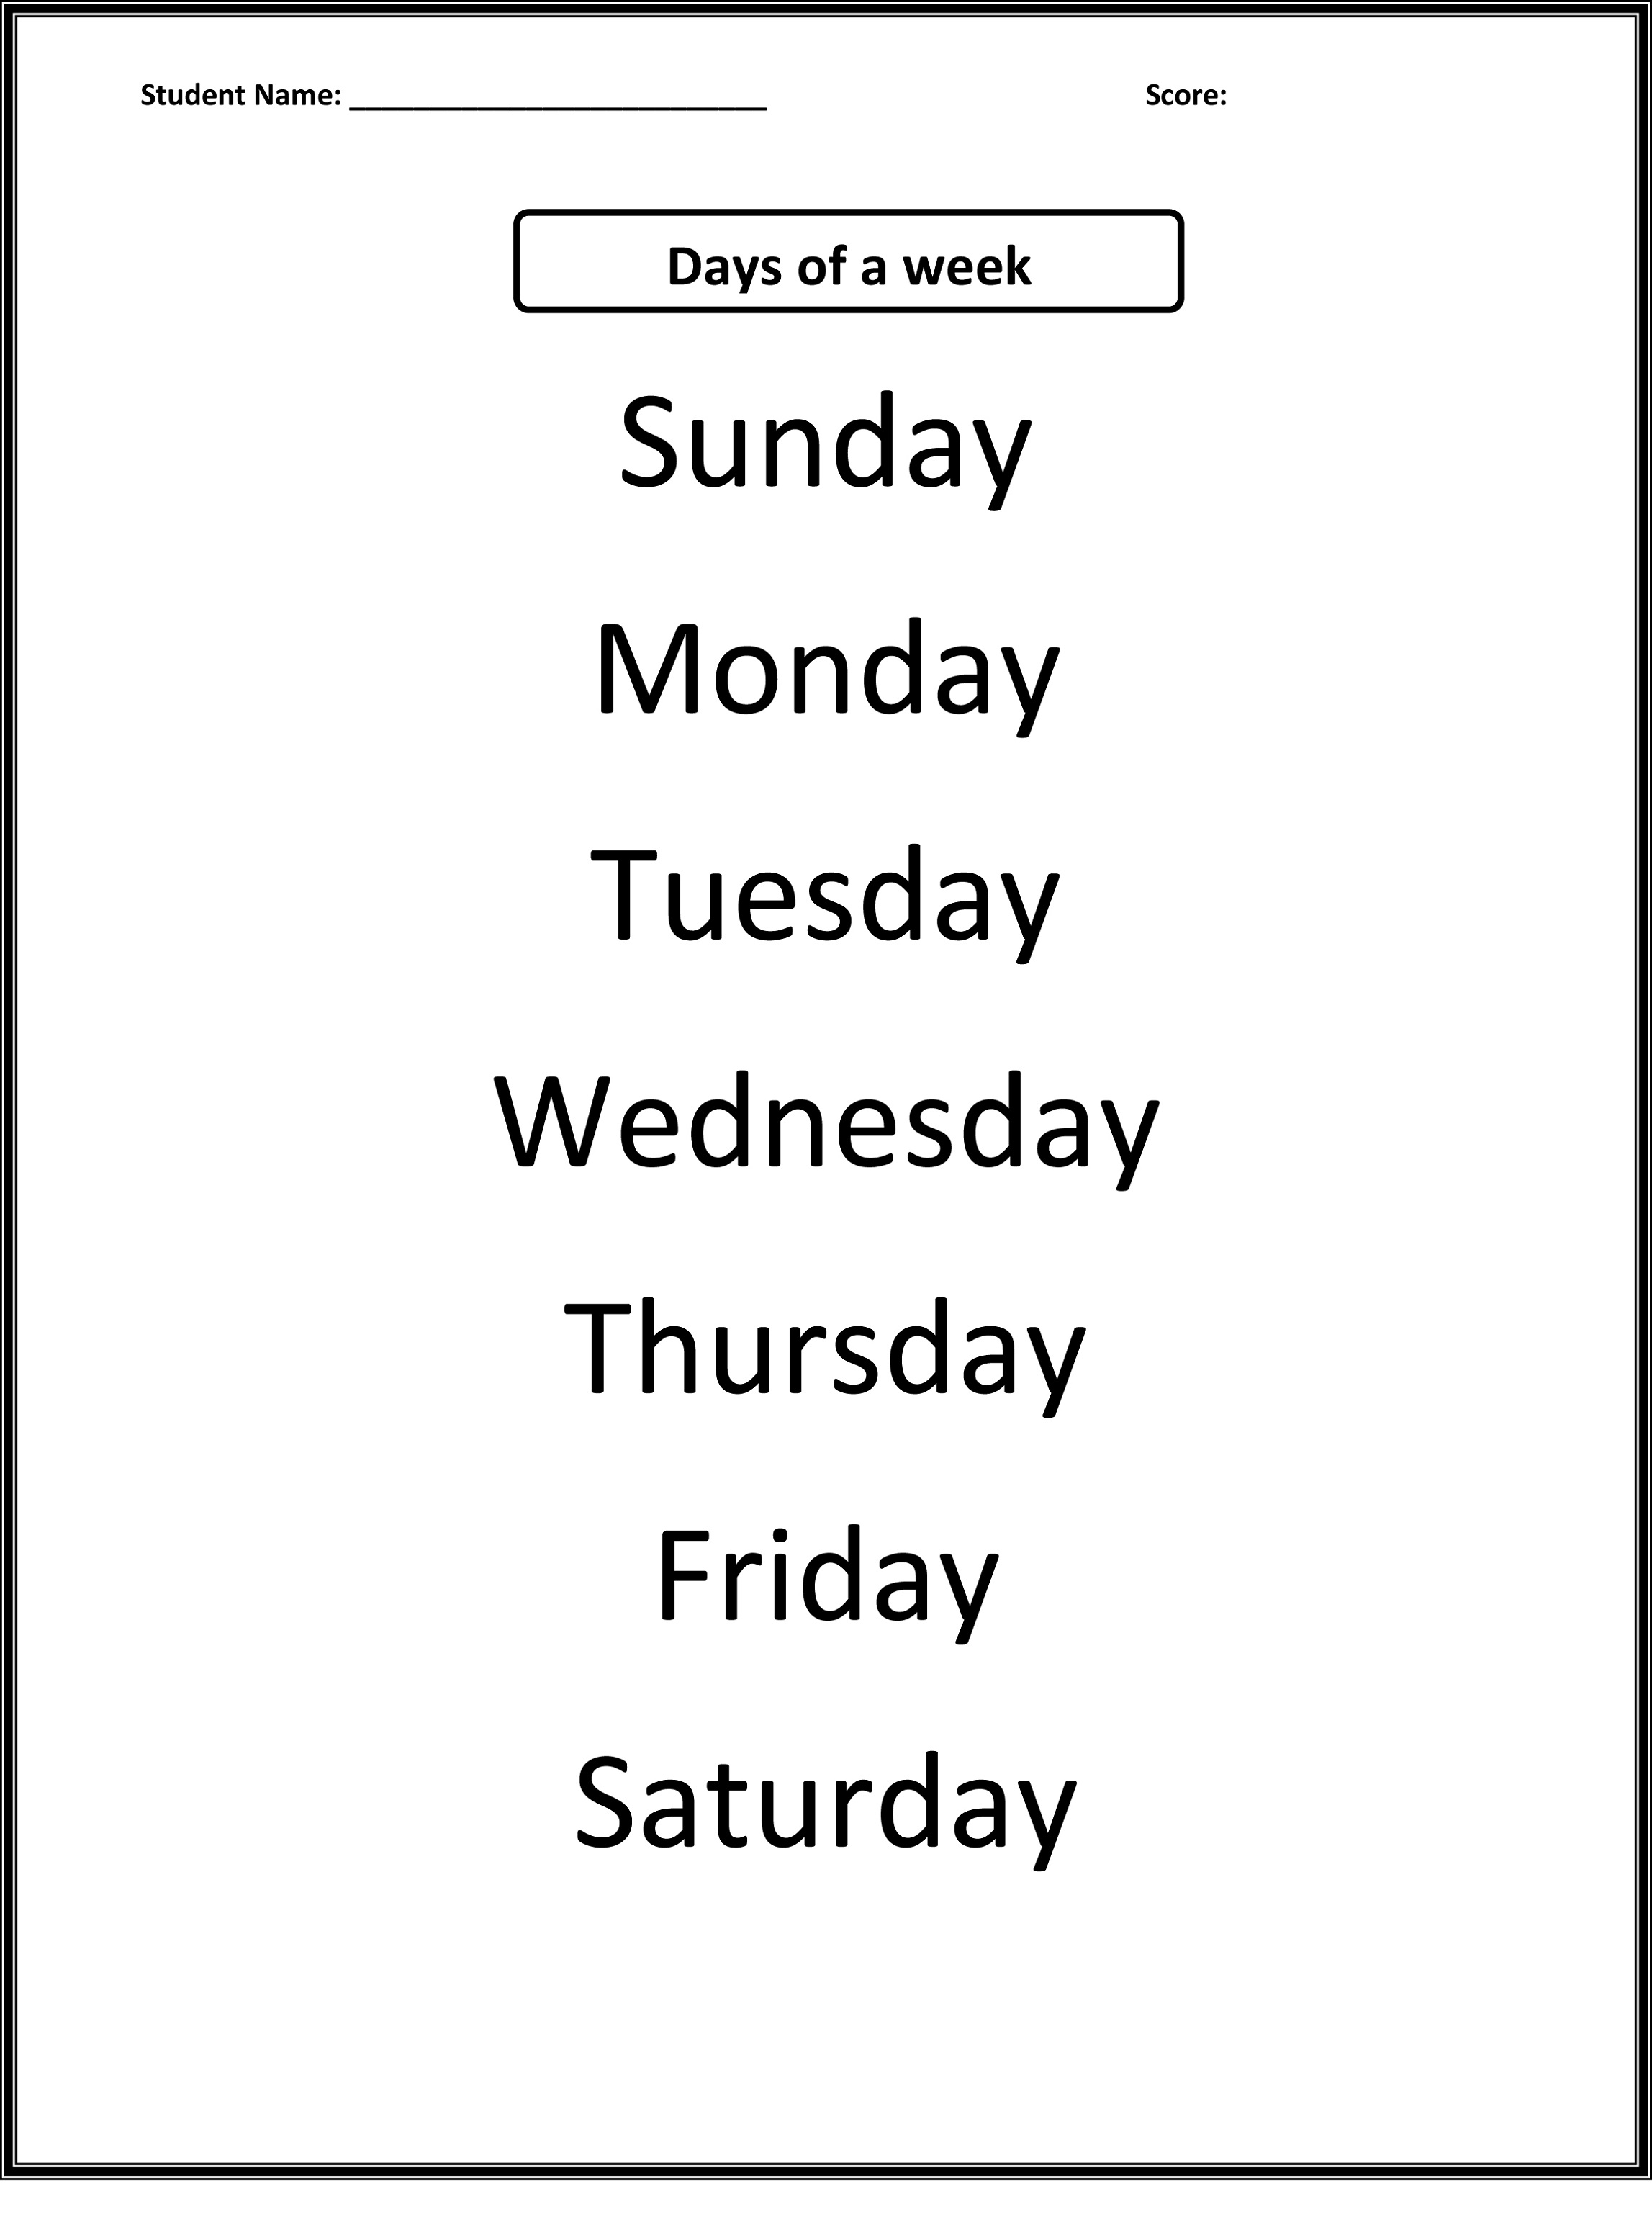 Worksheets For Days Of The Week